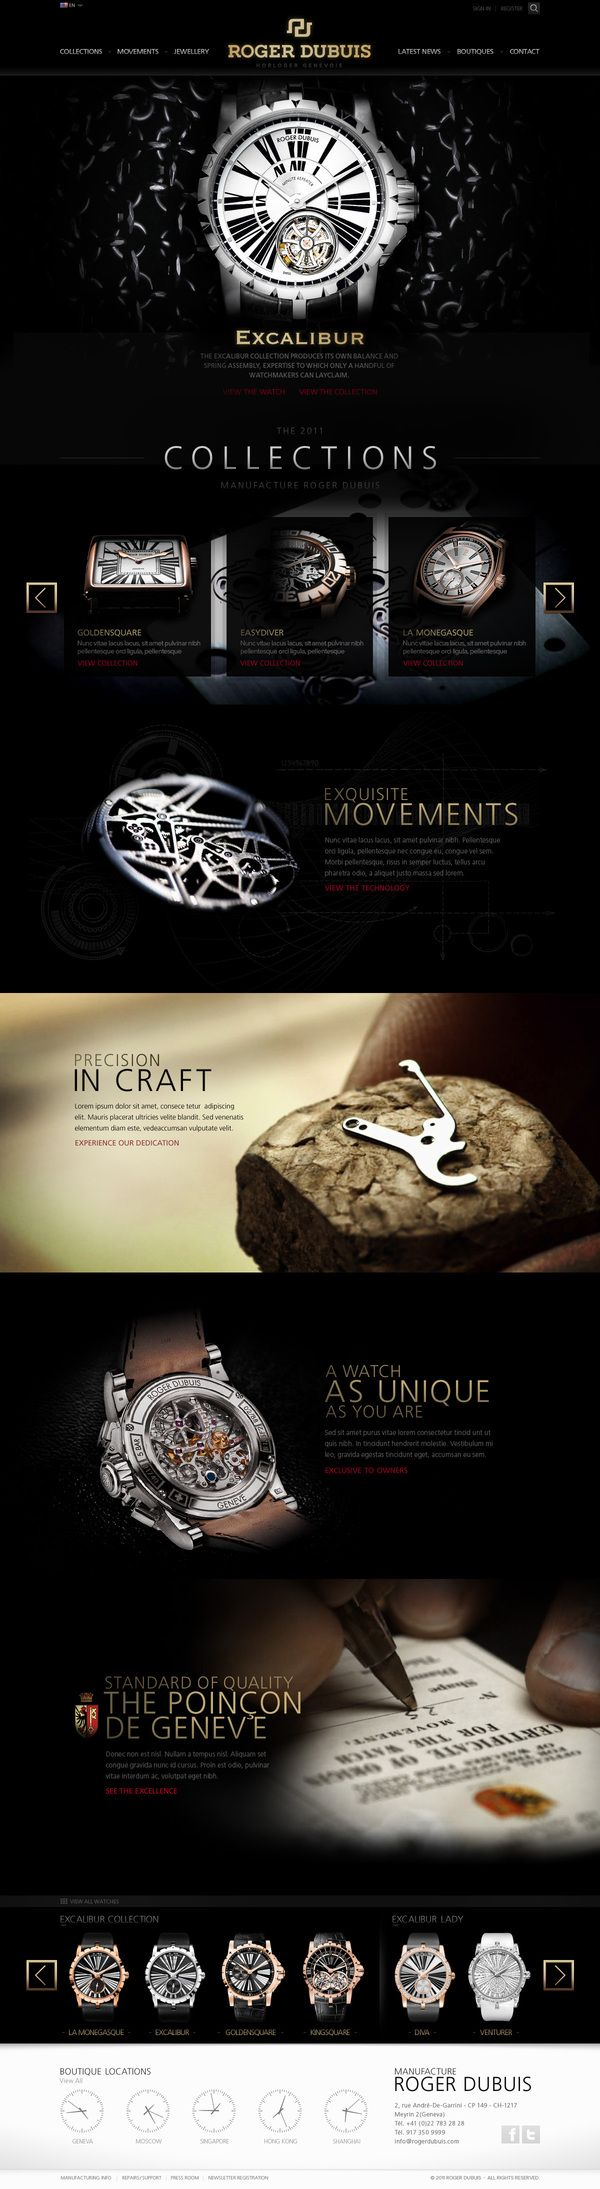 Roger Dubuis - Site Pitch Redesign by Abe Levin, via Behance #web #webdesign #digital #behance